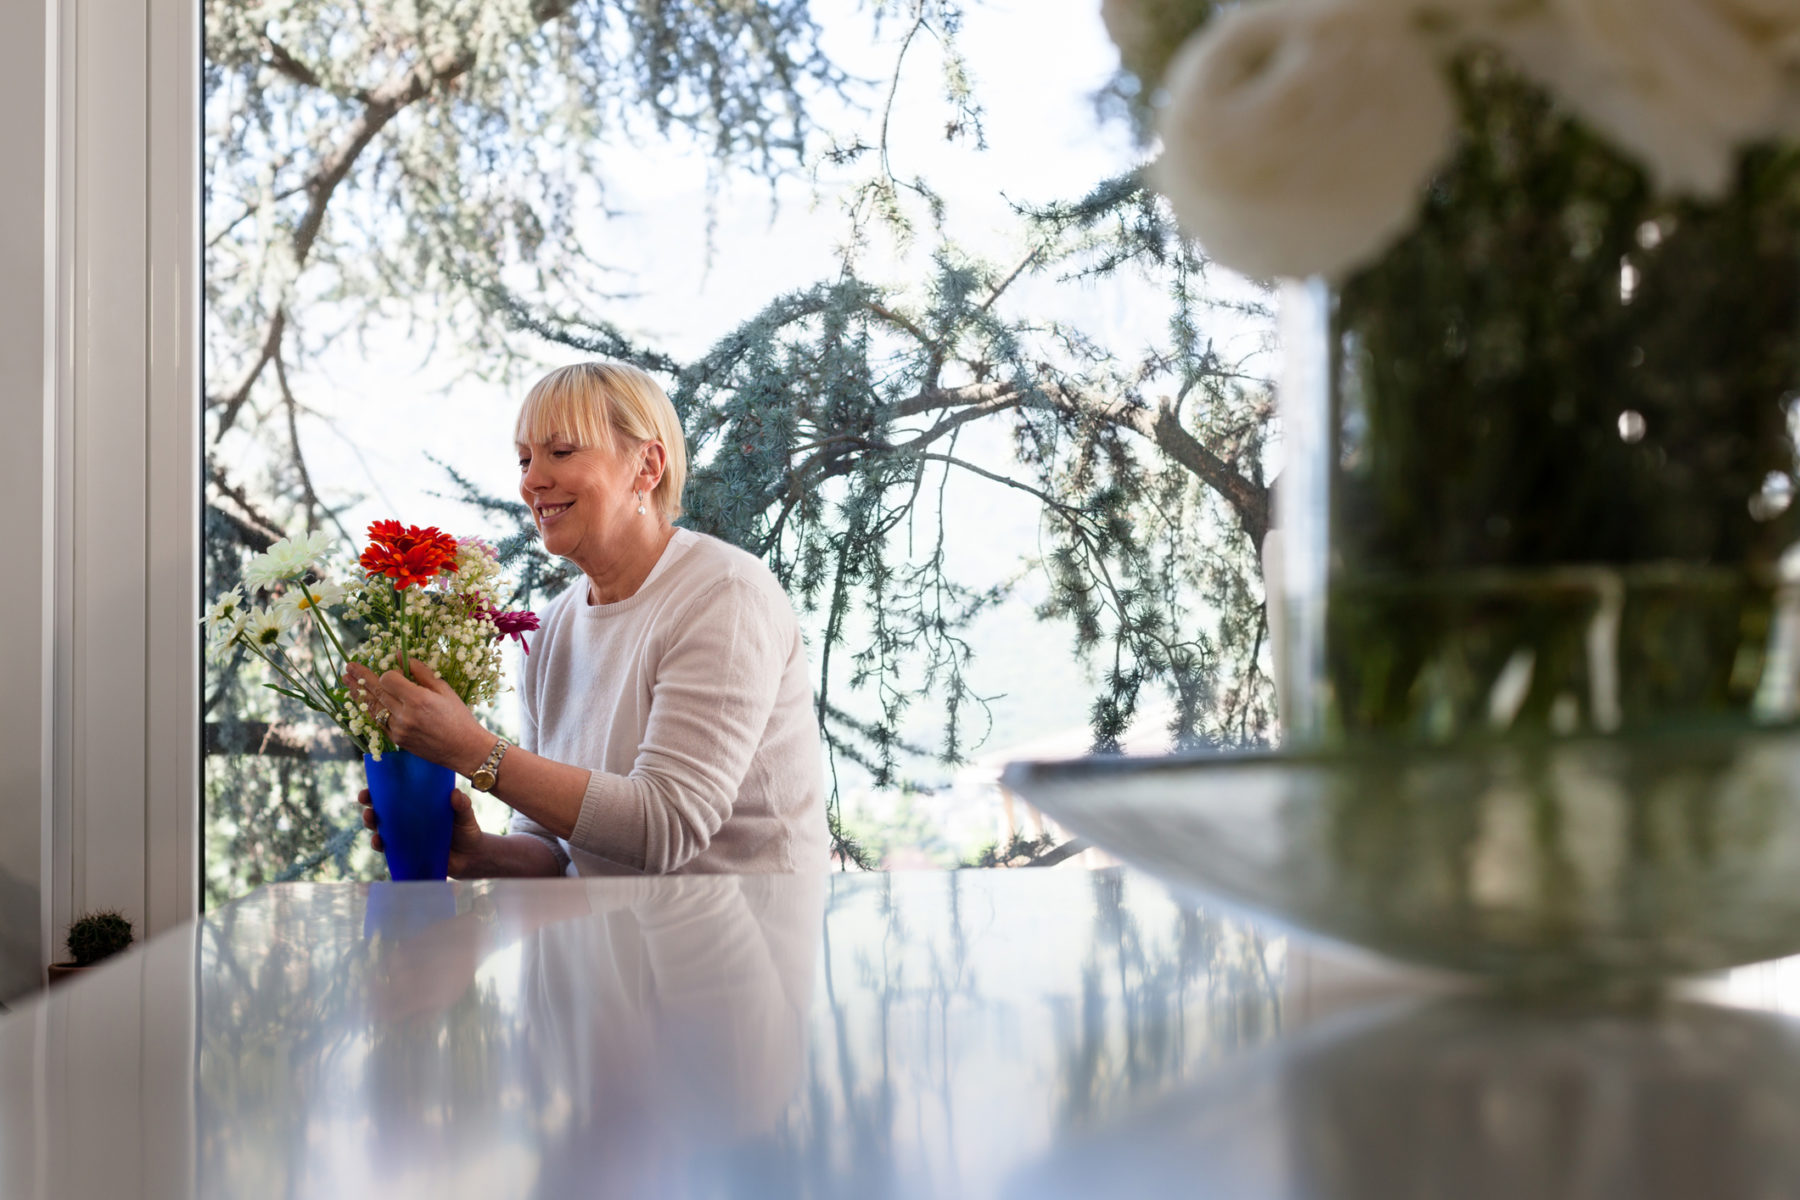 Woman Enjoying flowers in the home